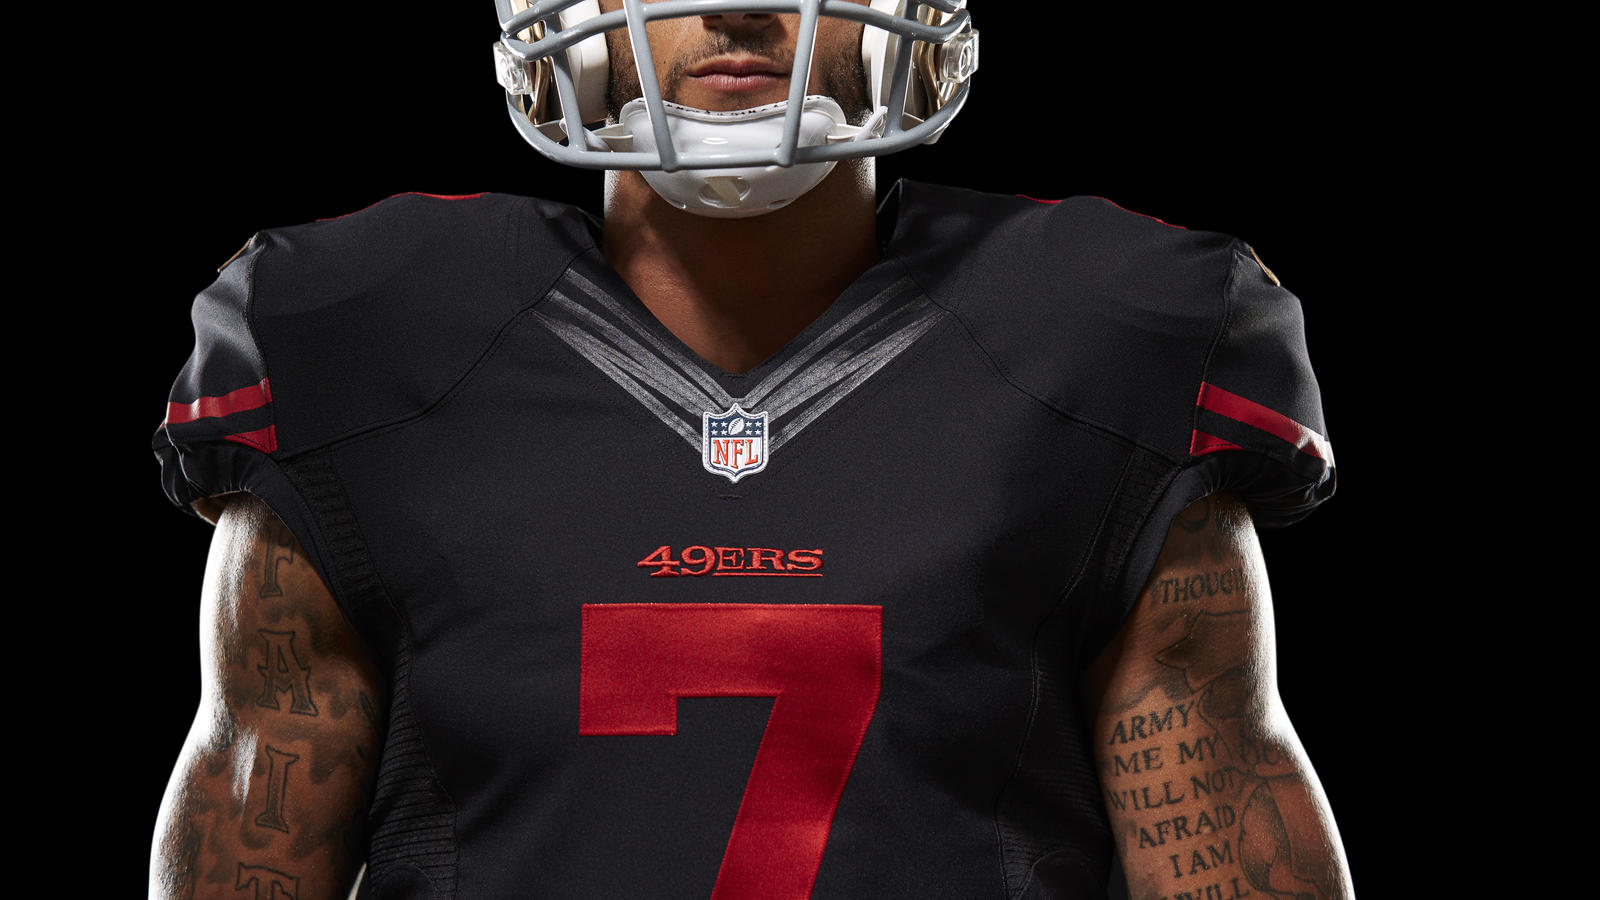 d6c54ff95 10 Things We Hope To Get From Colin Kaepernick s Nike